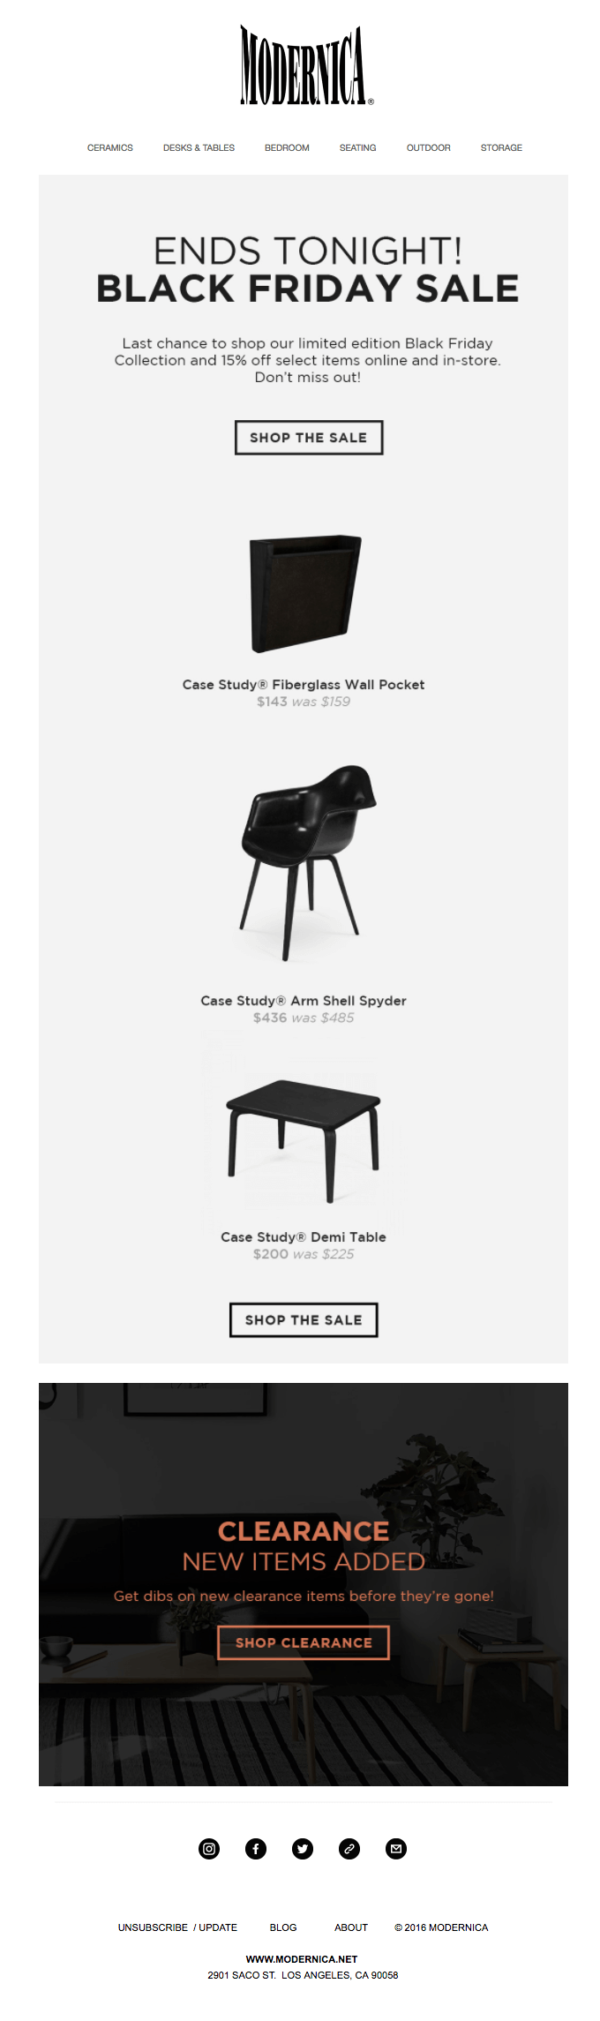 modernica black friday email